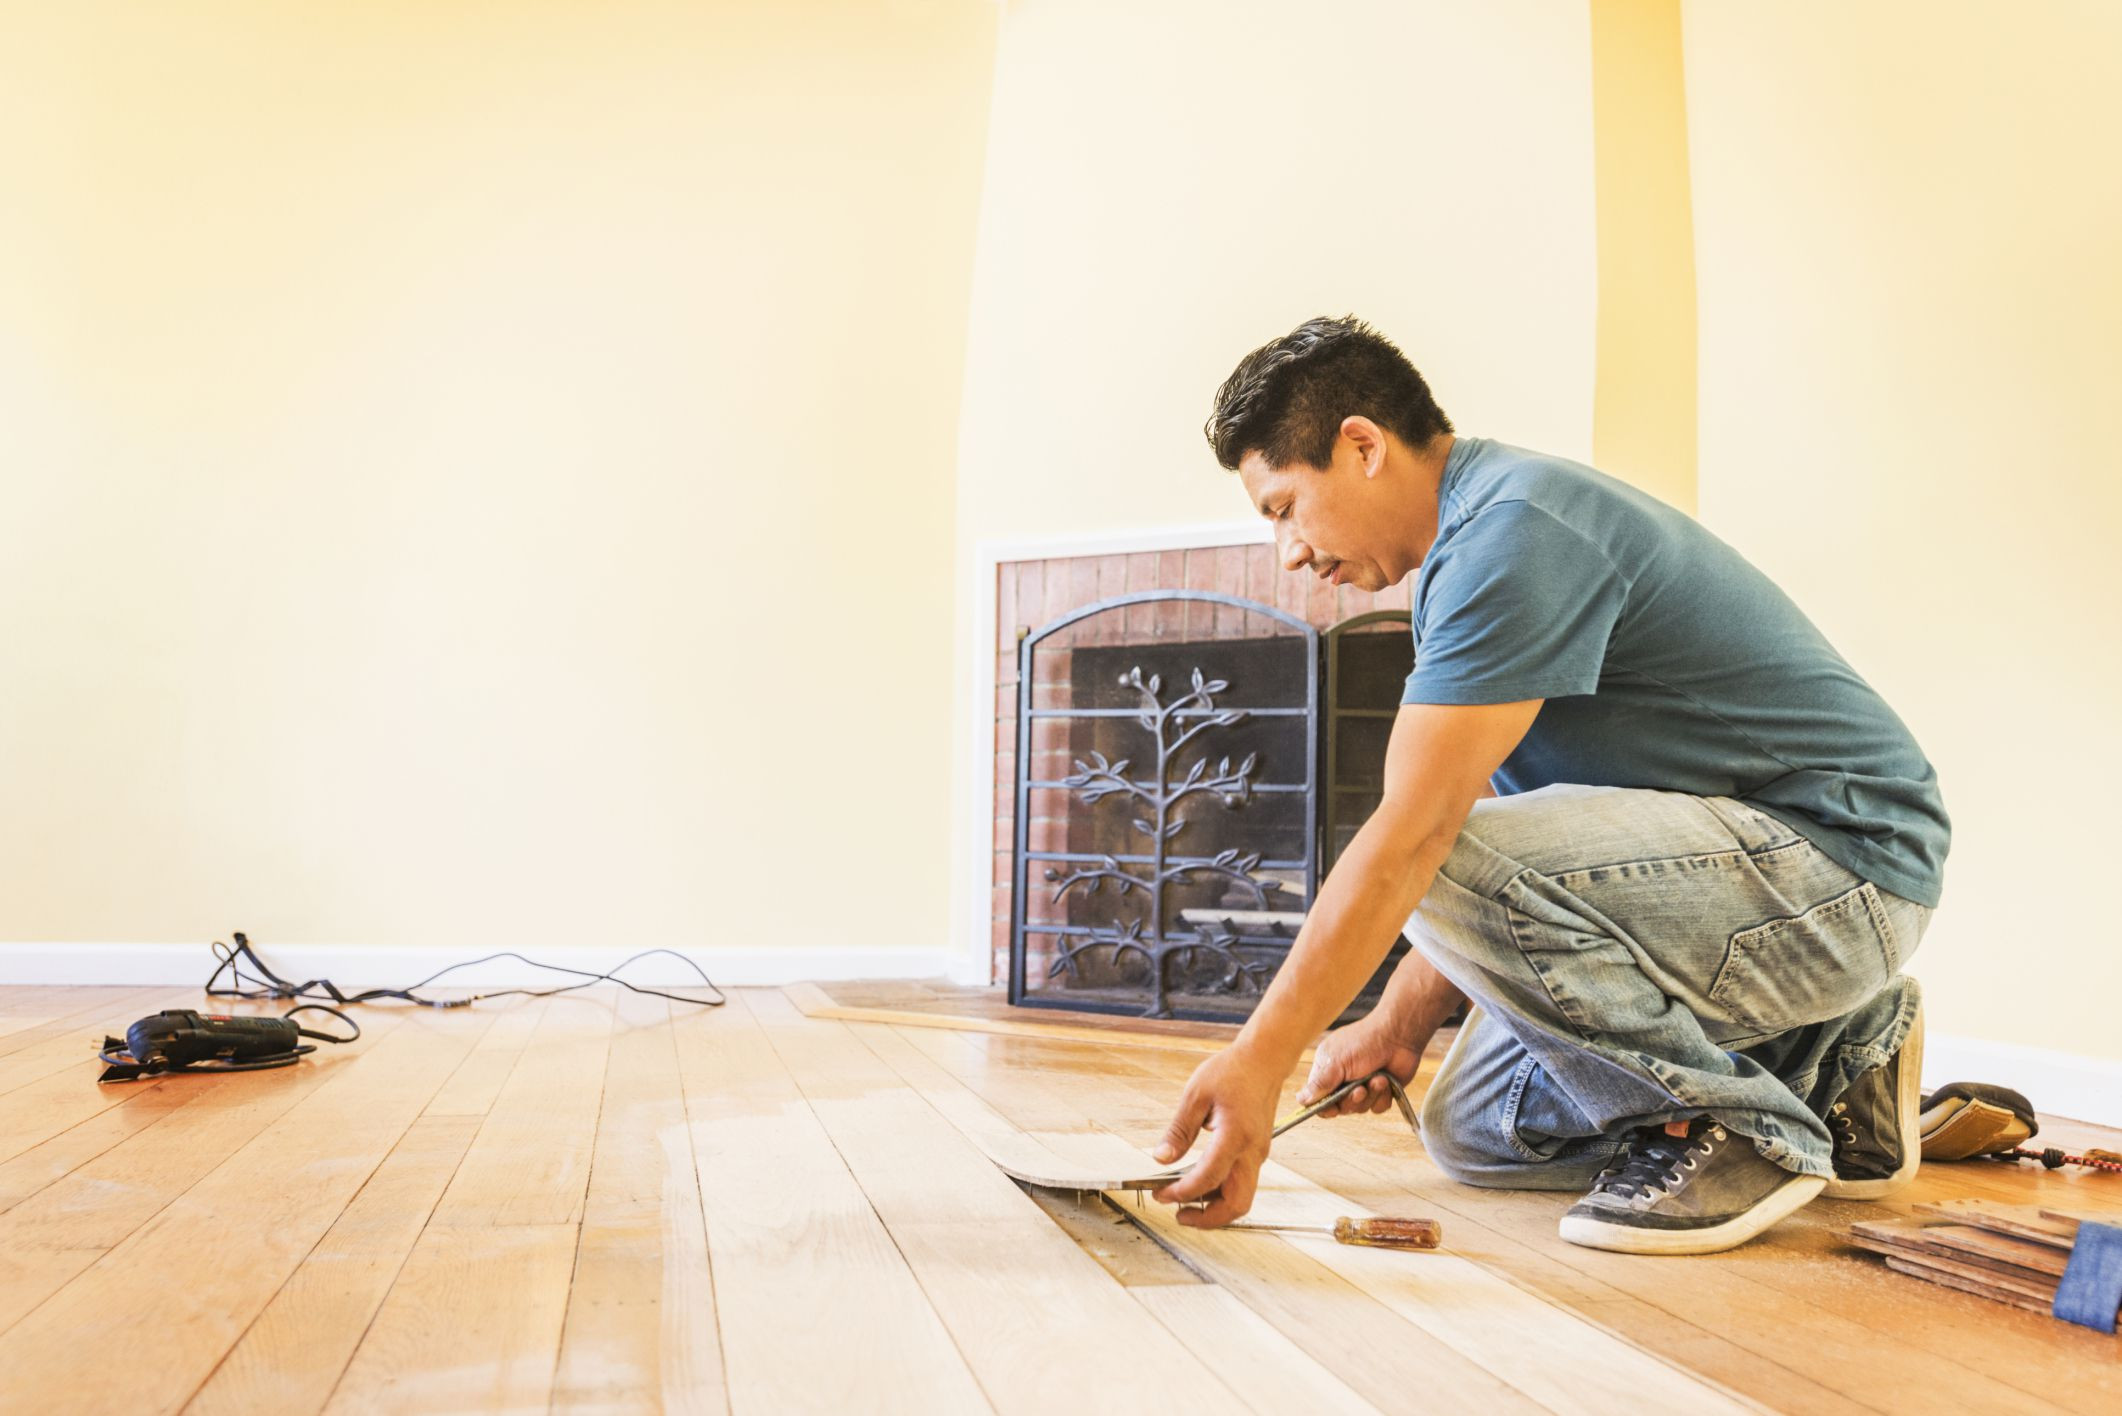 Installing Underlayment for Hardwood Floors Of solid Hardwood Flooring Costs for Professional Vs Diy Throughout Installwoodflooring 592016327 56684d6f3df78ce1610a598a